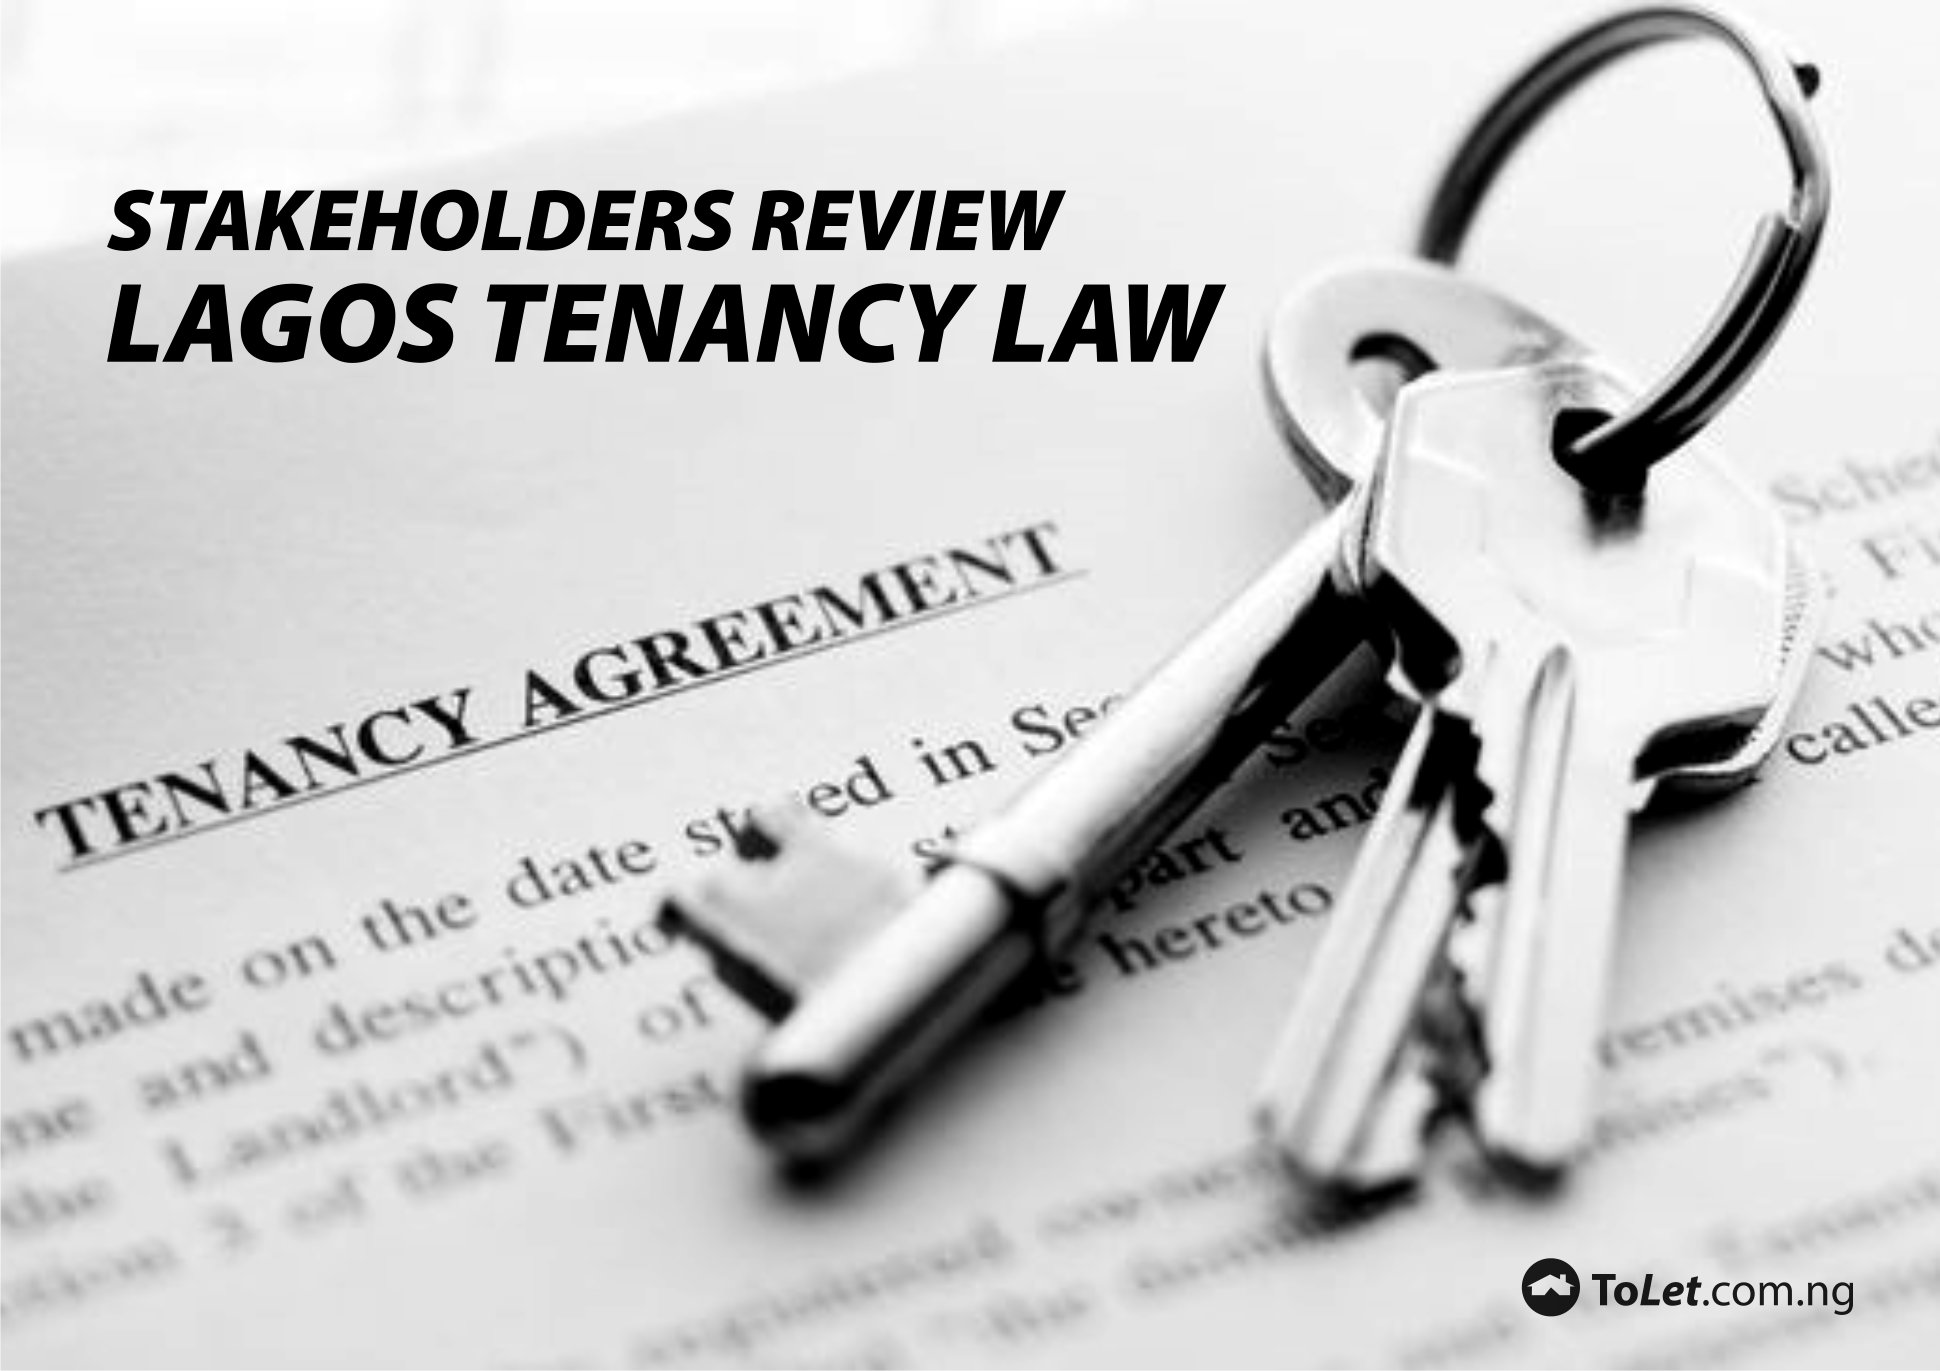 comparism between lagos state tenancy law The lagos state law reform commission has said that it has identified the need to review certain provisions of the existing lagos state tenancy law of 2011 with a view to further ensuring fairness and reposition the law to reflect present societal values and realities.